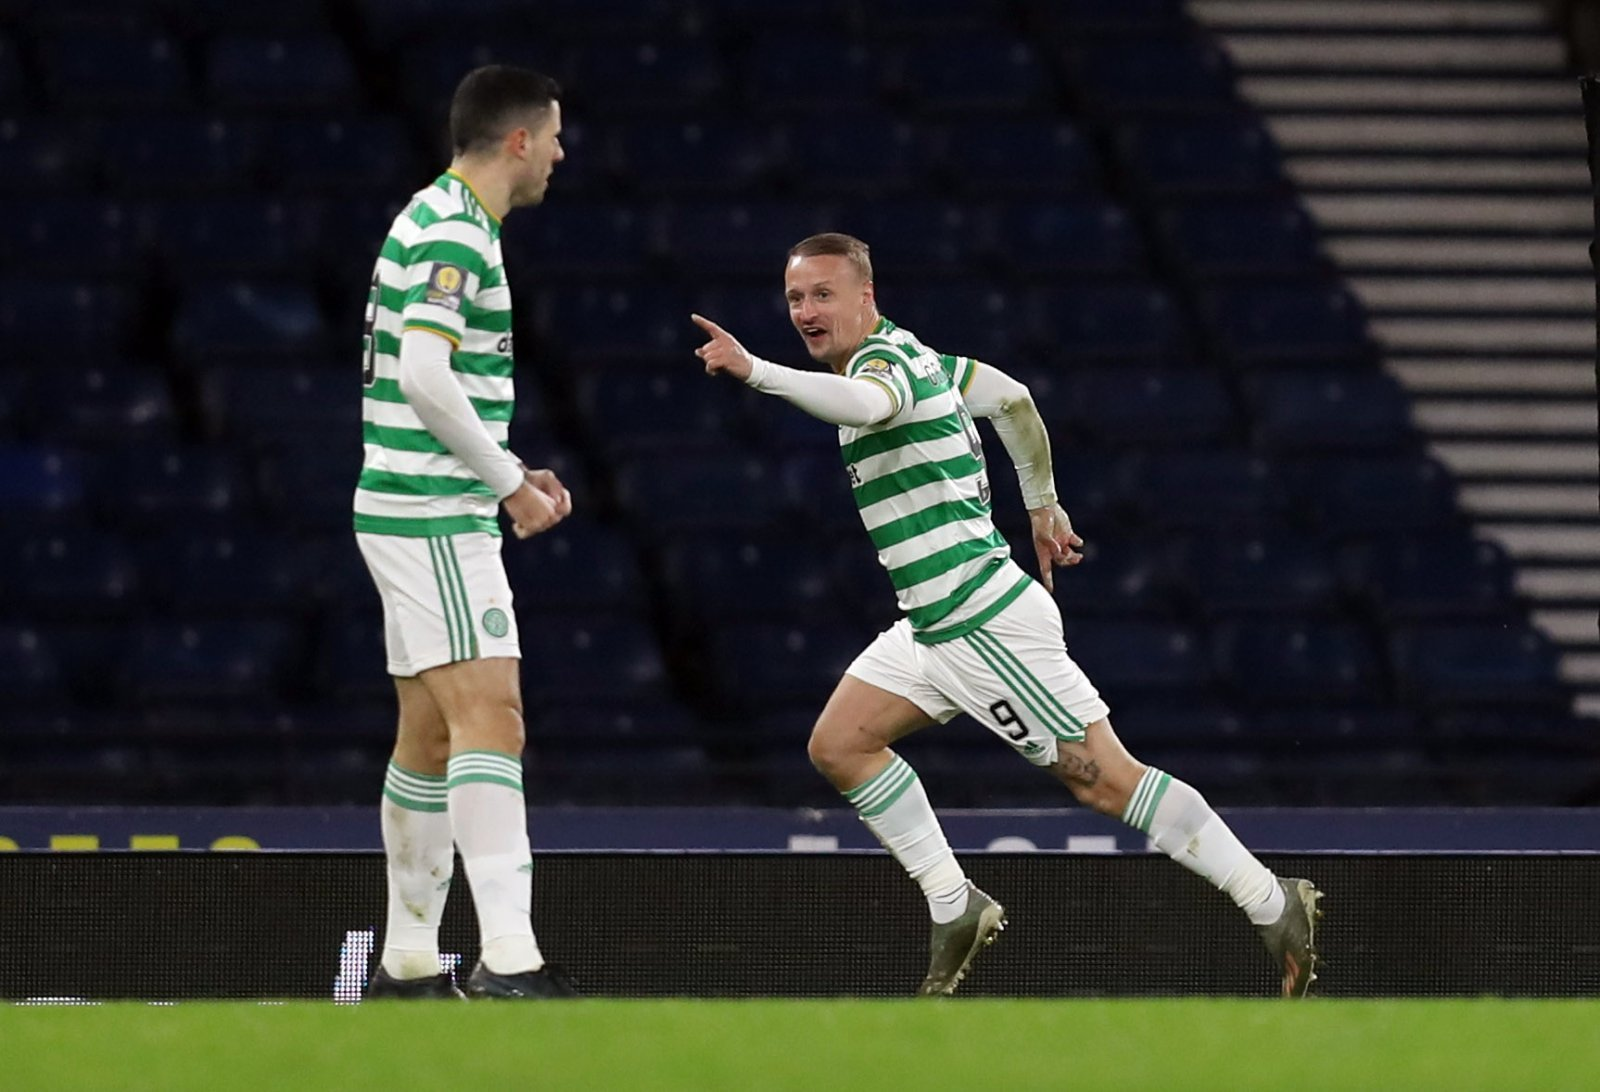 Leigh Griffiths playing for Celtic